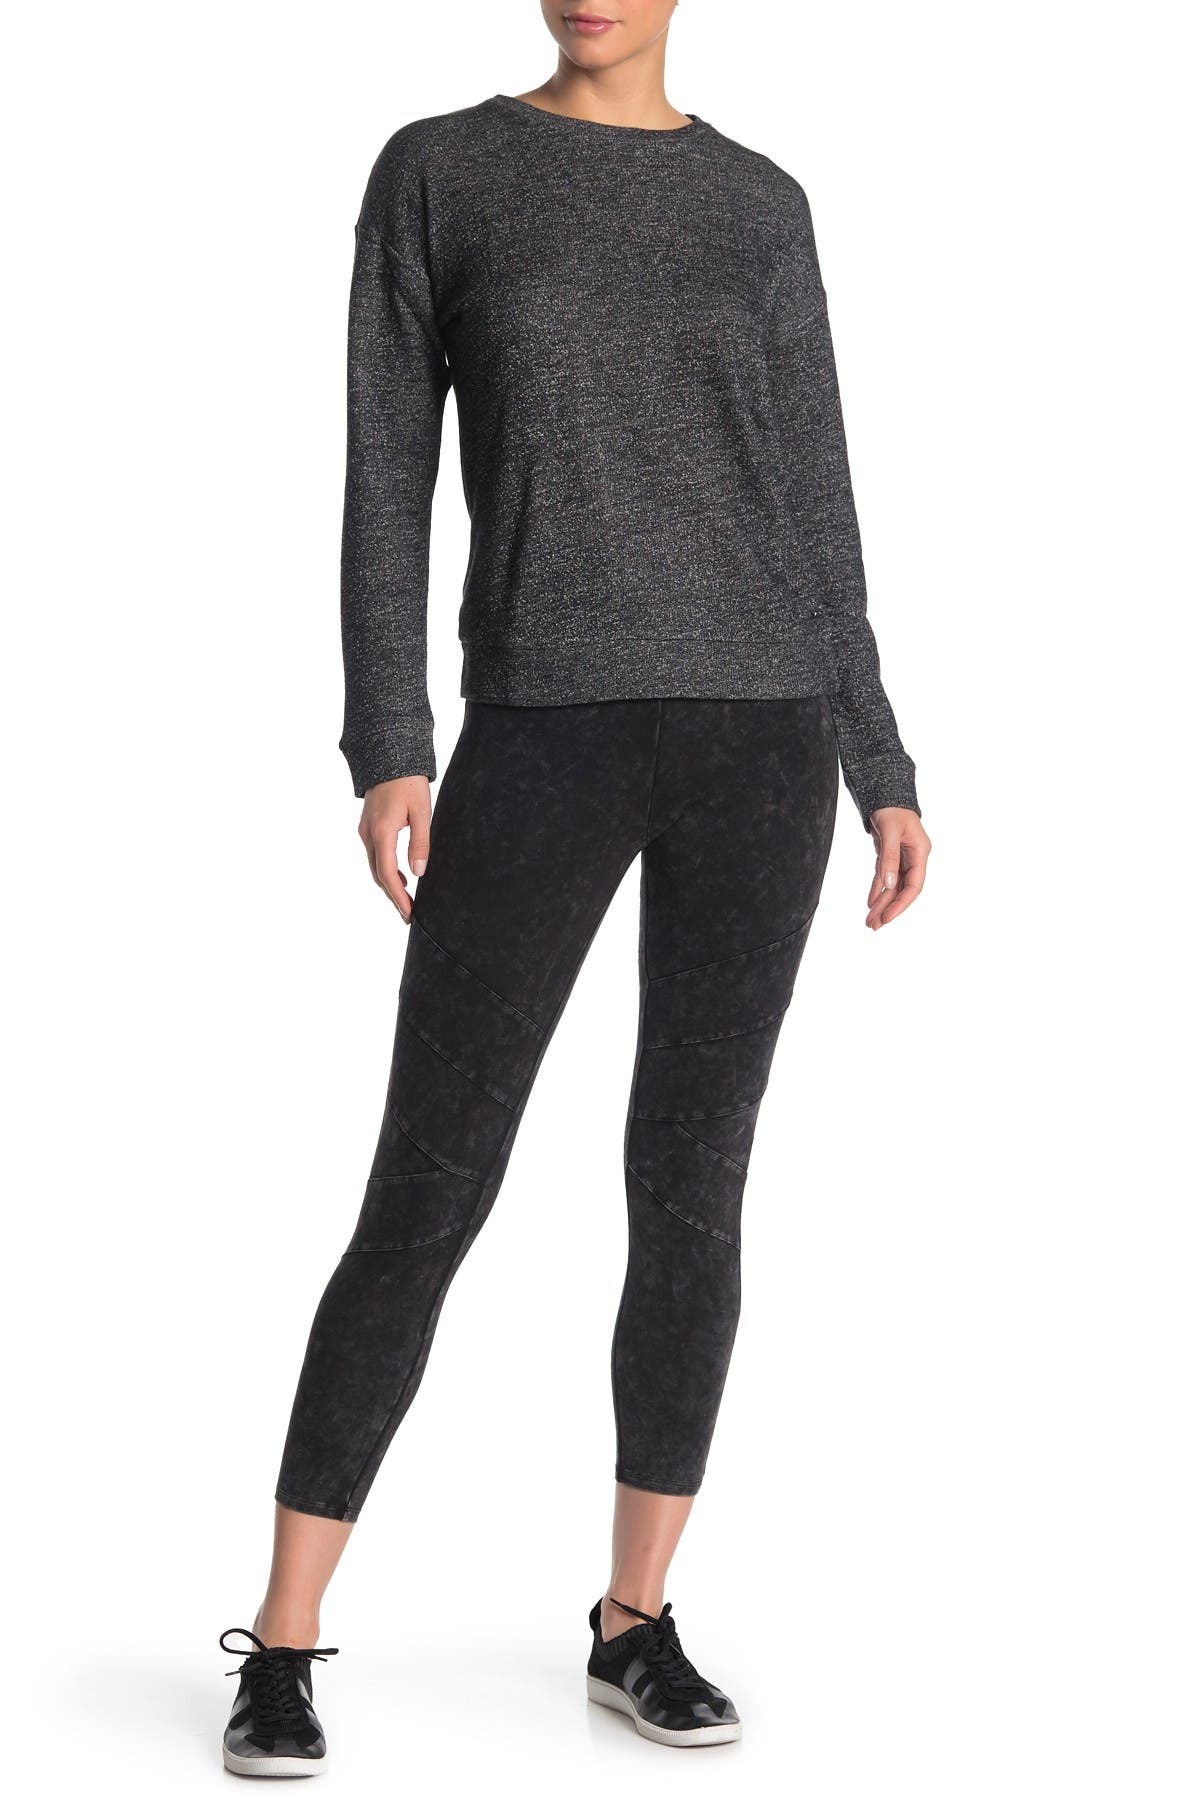 Image of MARC NEW YORK PERFORMANCE Mineral Wash 7/8 Seam Leggings